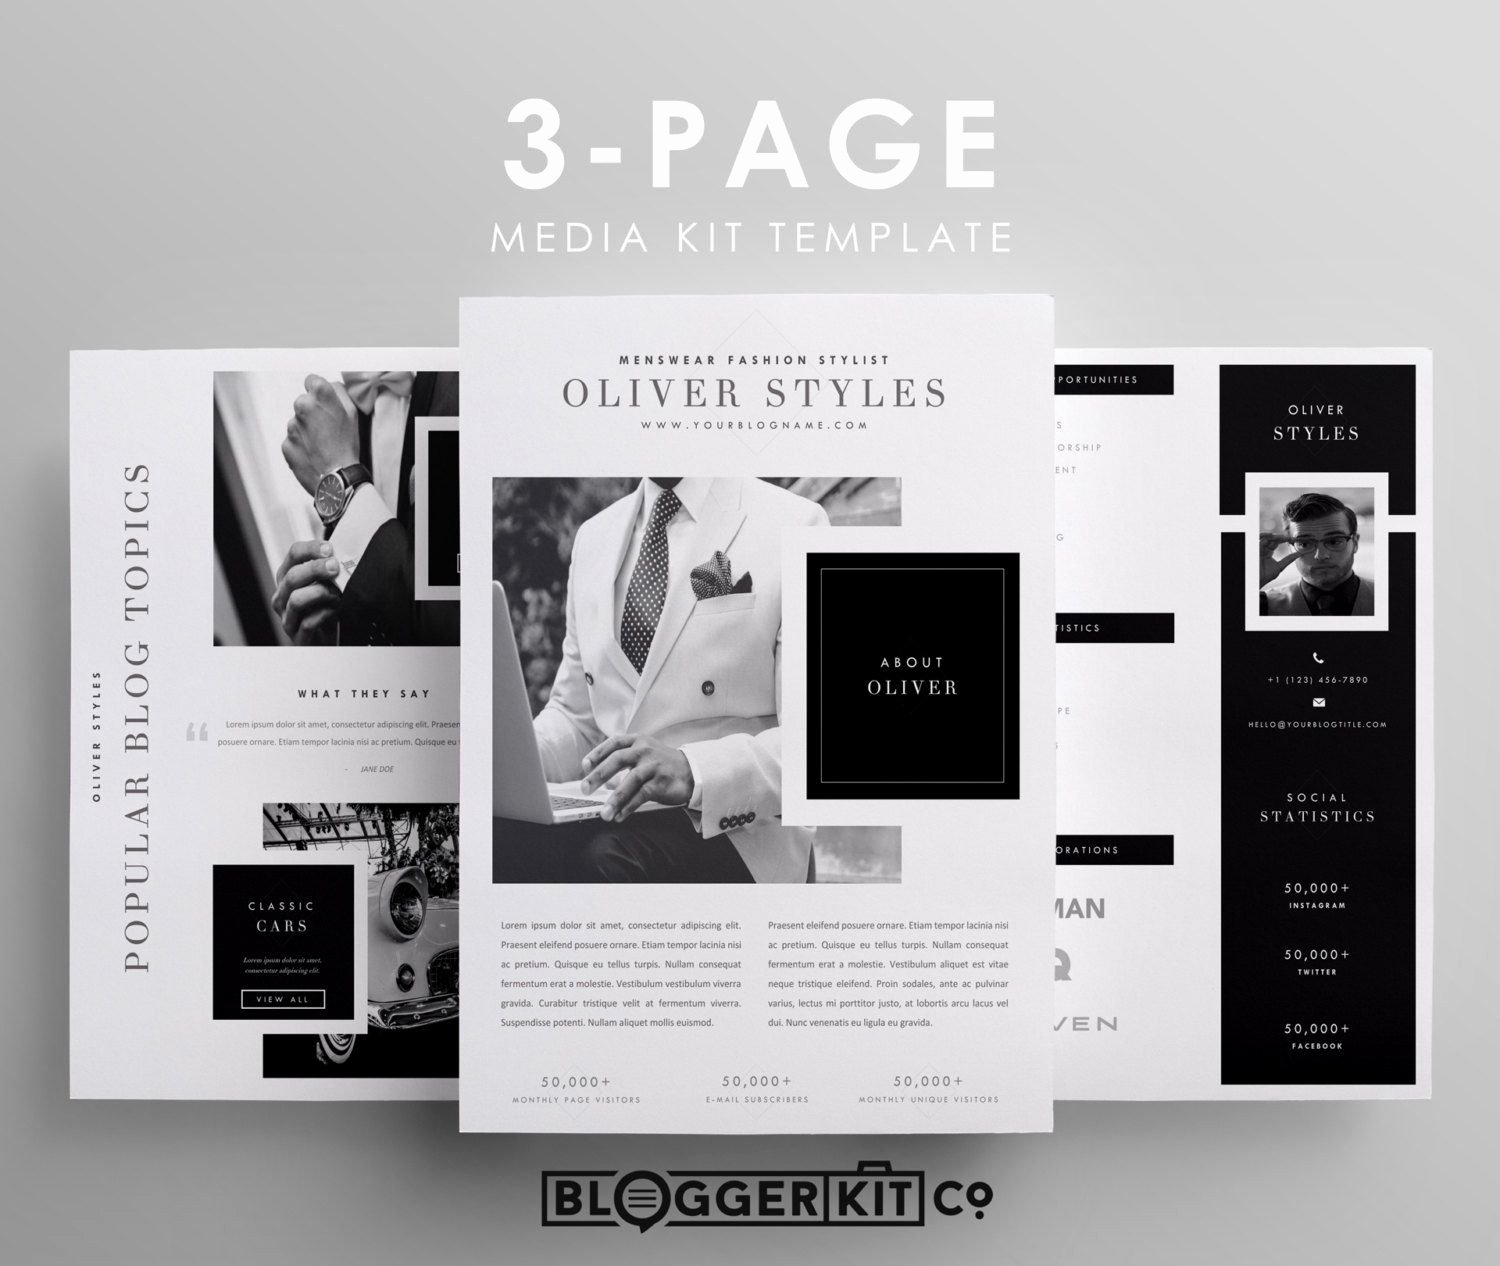 Free Press Kit Template Lovely Three Page Media Kit Template